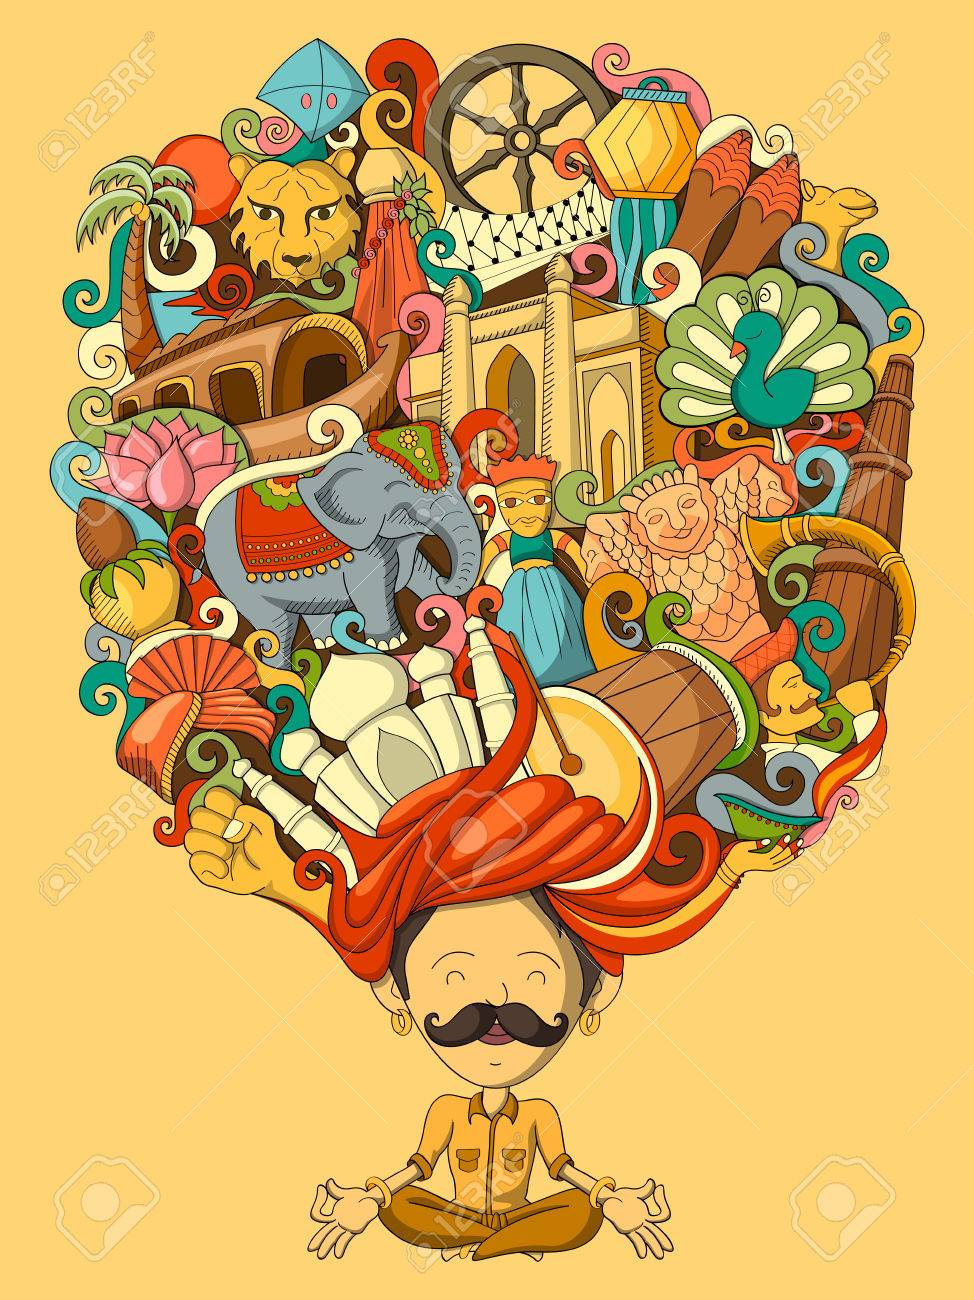 vector illustration of dream and thought of Indian man - 55751874